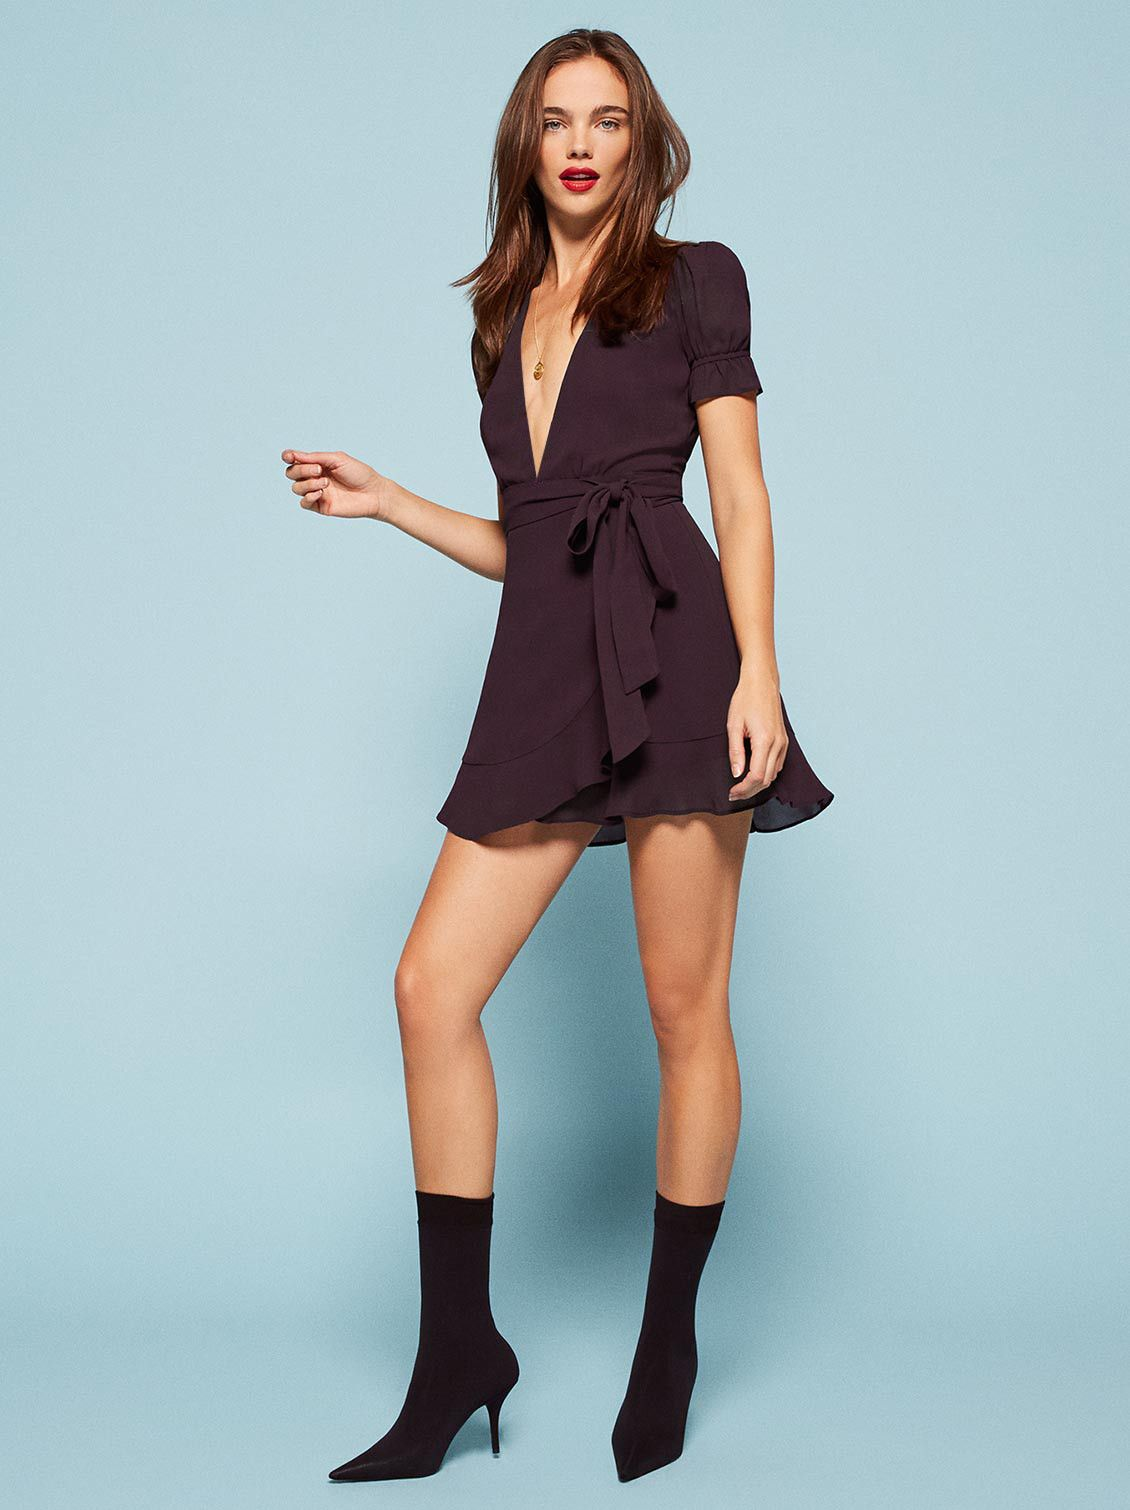 Reformation | fashion | Pinterest | Reformation, Ugly dresses and Woman